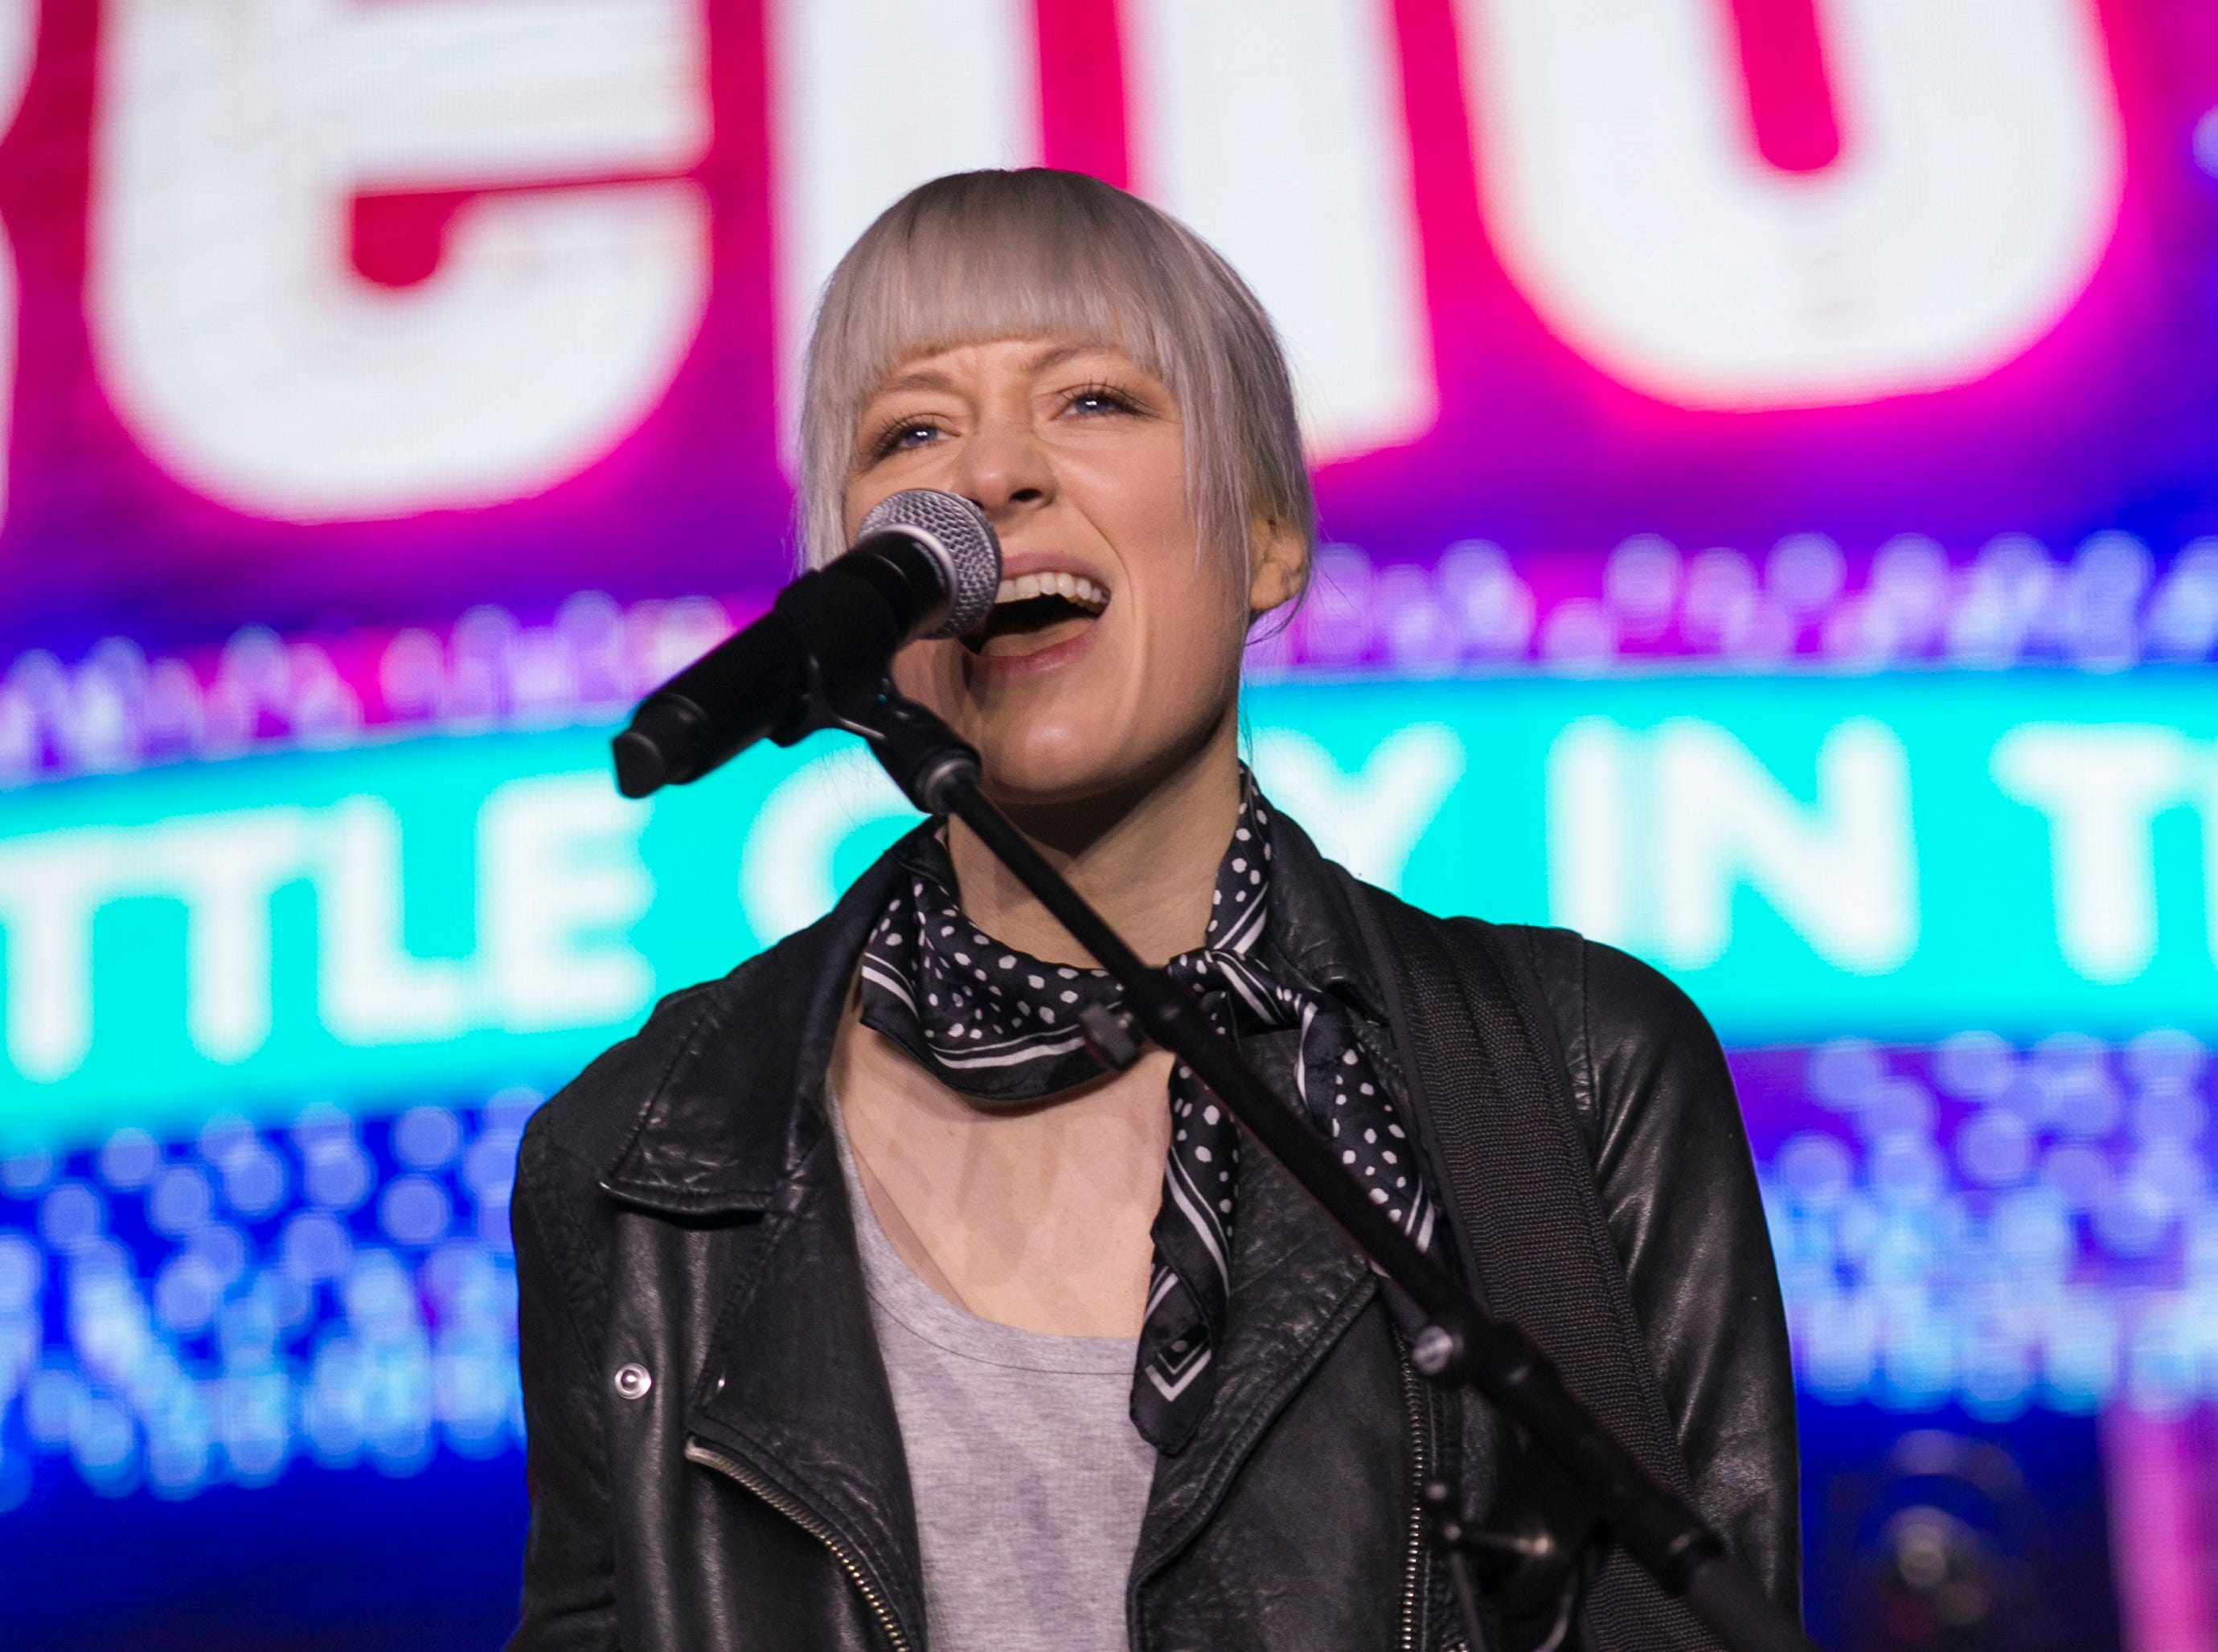 Larkin Poe performs during TEDx University of Nevada 2019 at the Reno-Sparks Convention Center on Saturday, Feb. 23, 2019.